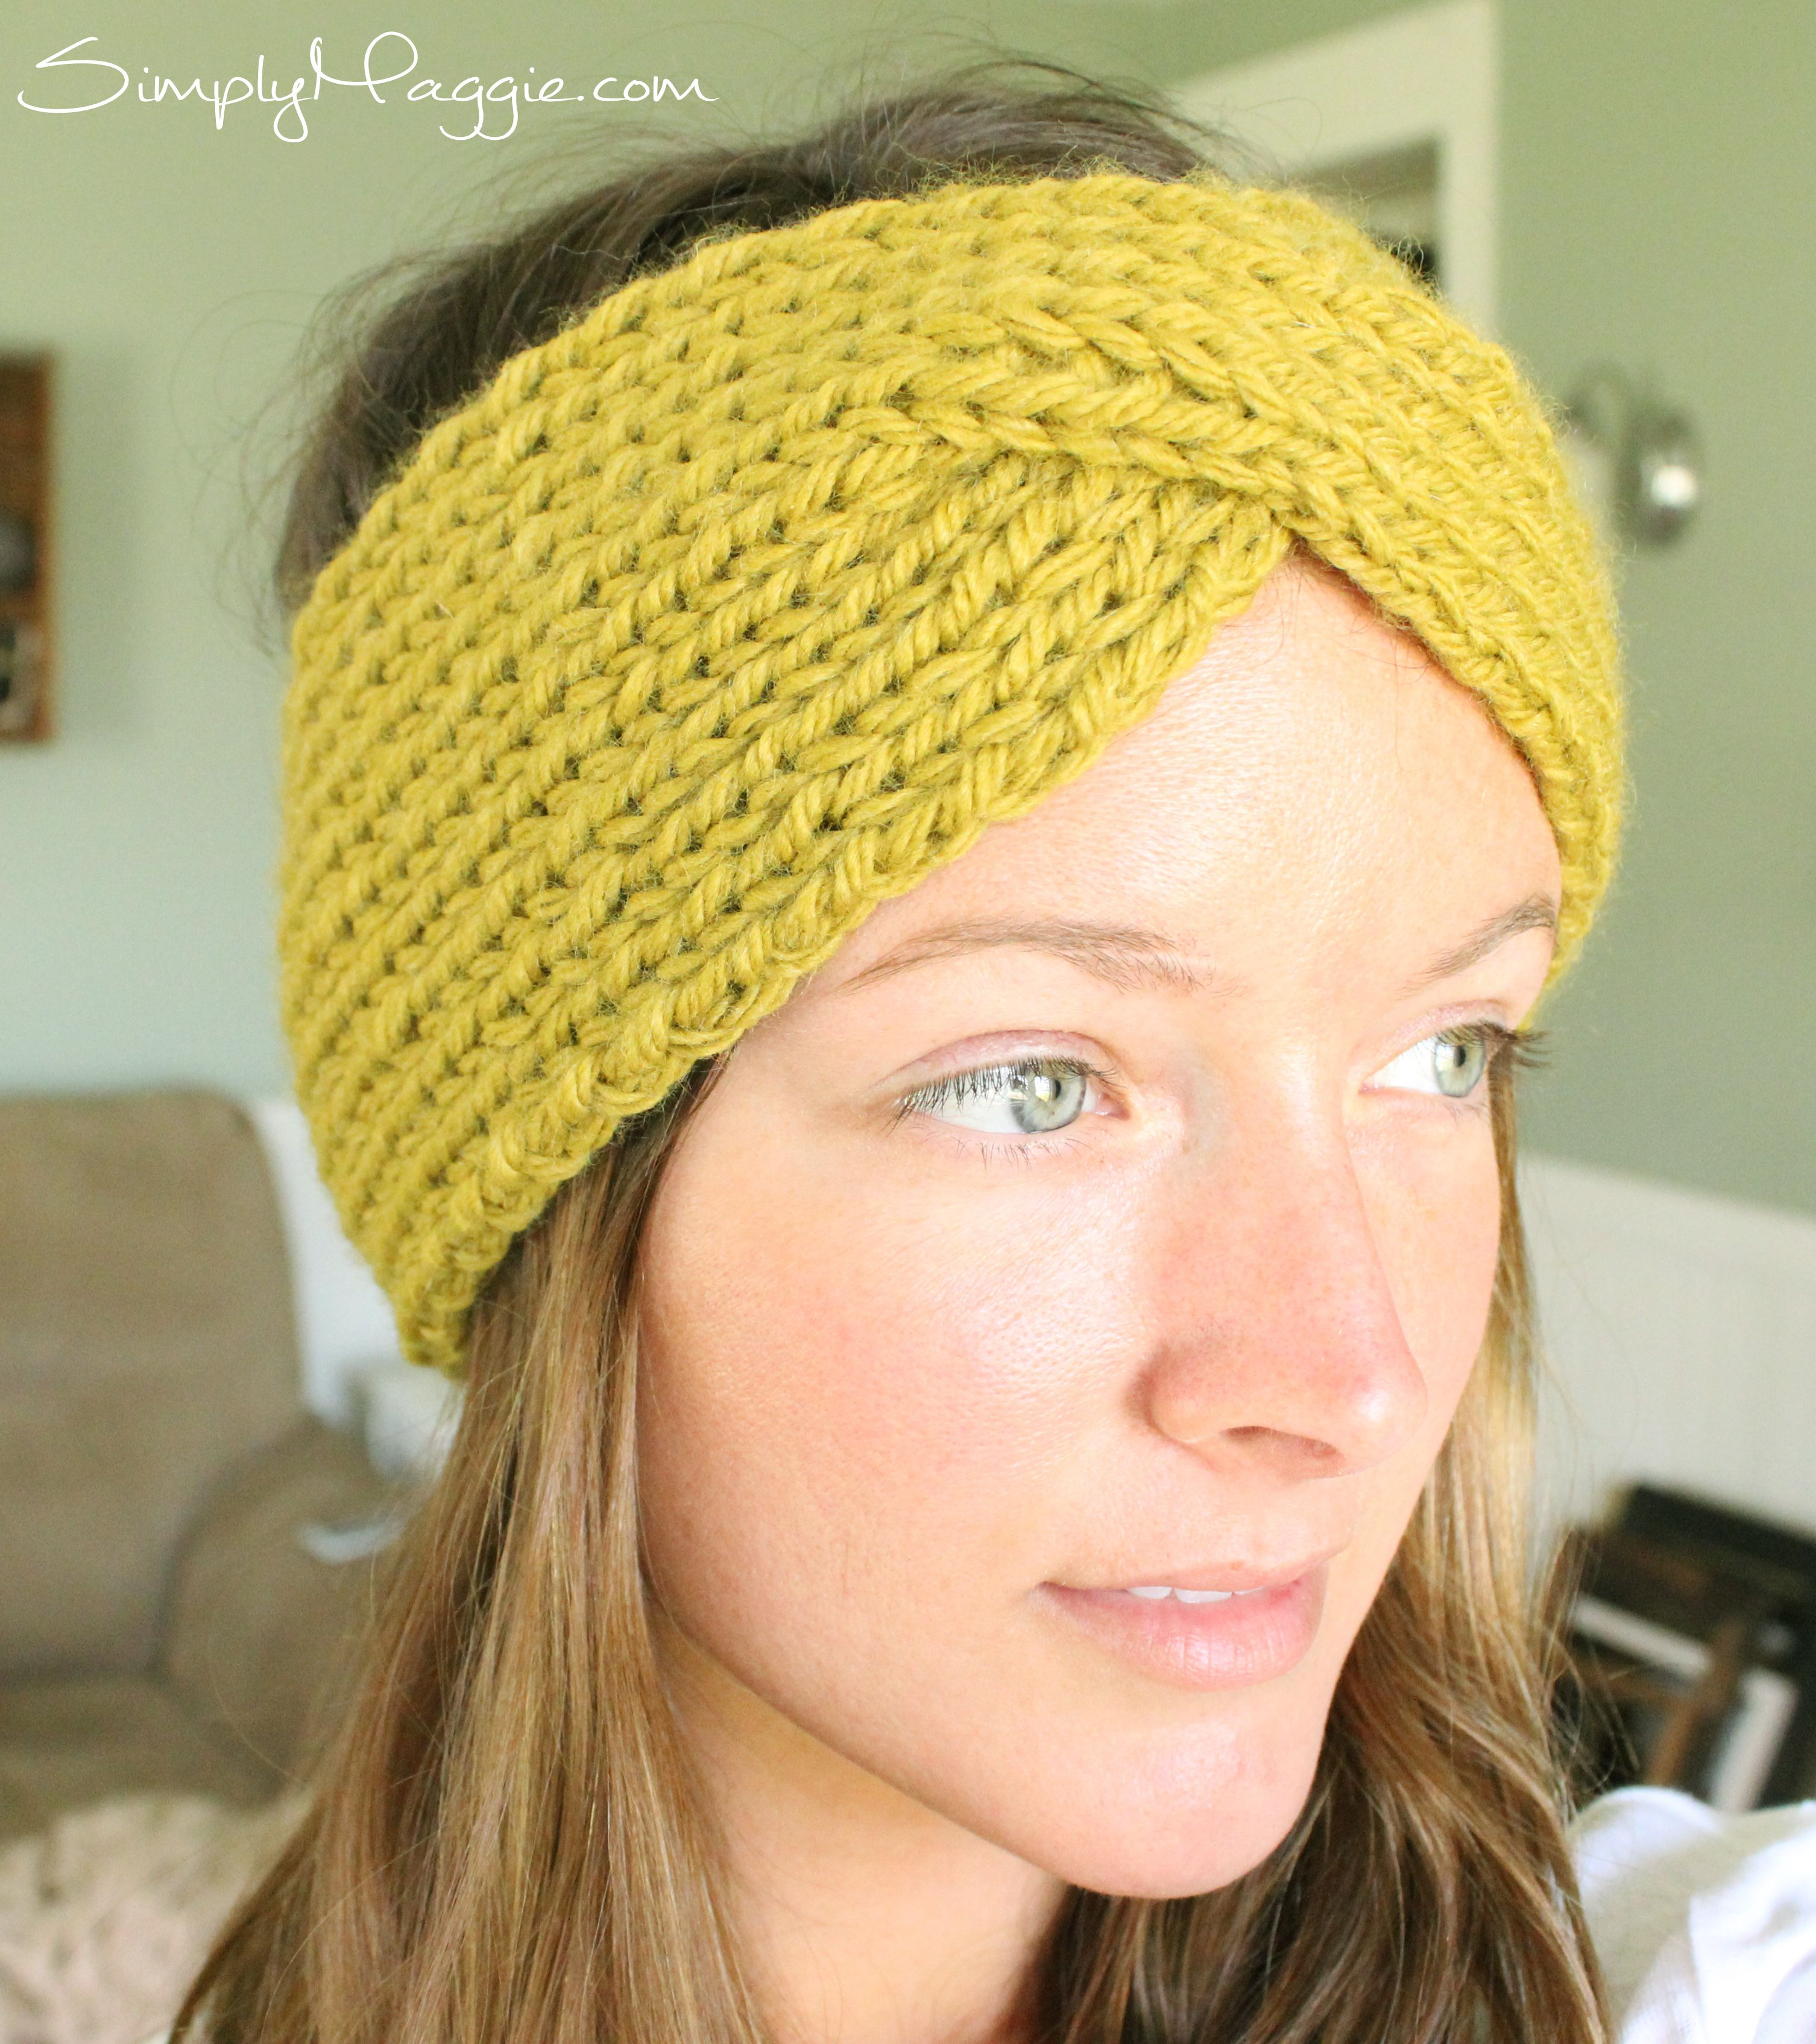 Turban Style Knit Headband Pattern | SimplyMaggie.com | To Make ...